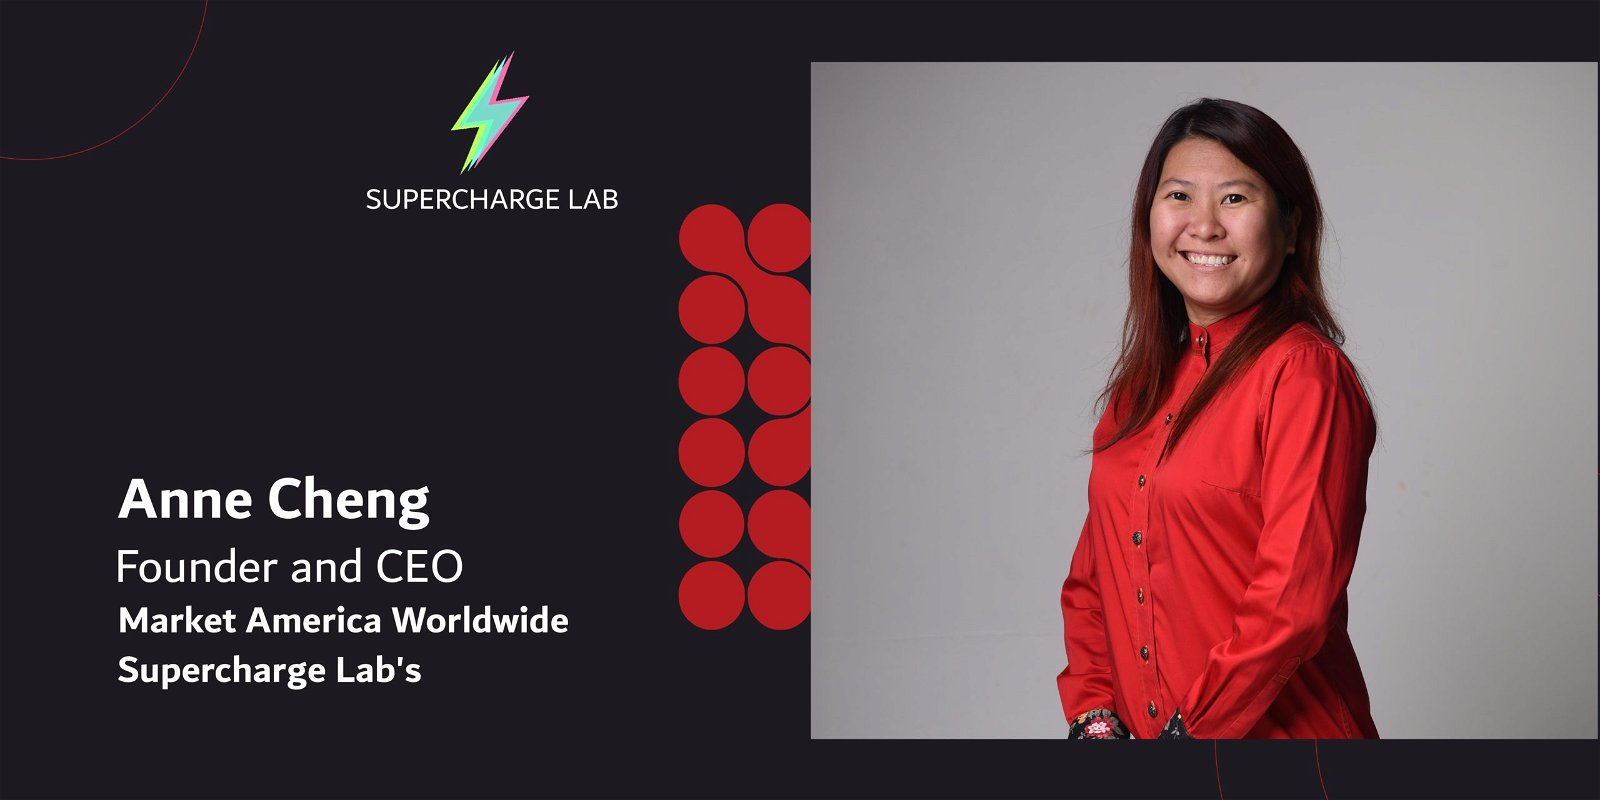 Anne Cheng: Leading the Way for a Technologically Advanced Business World